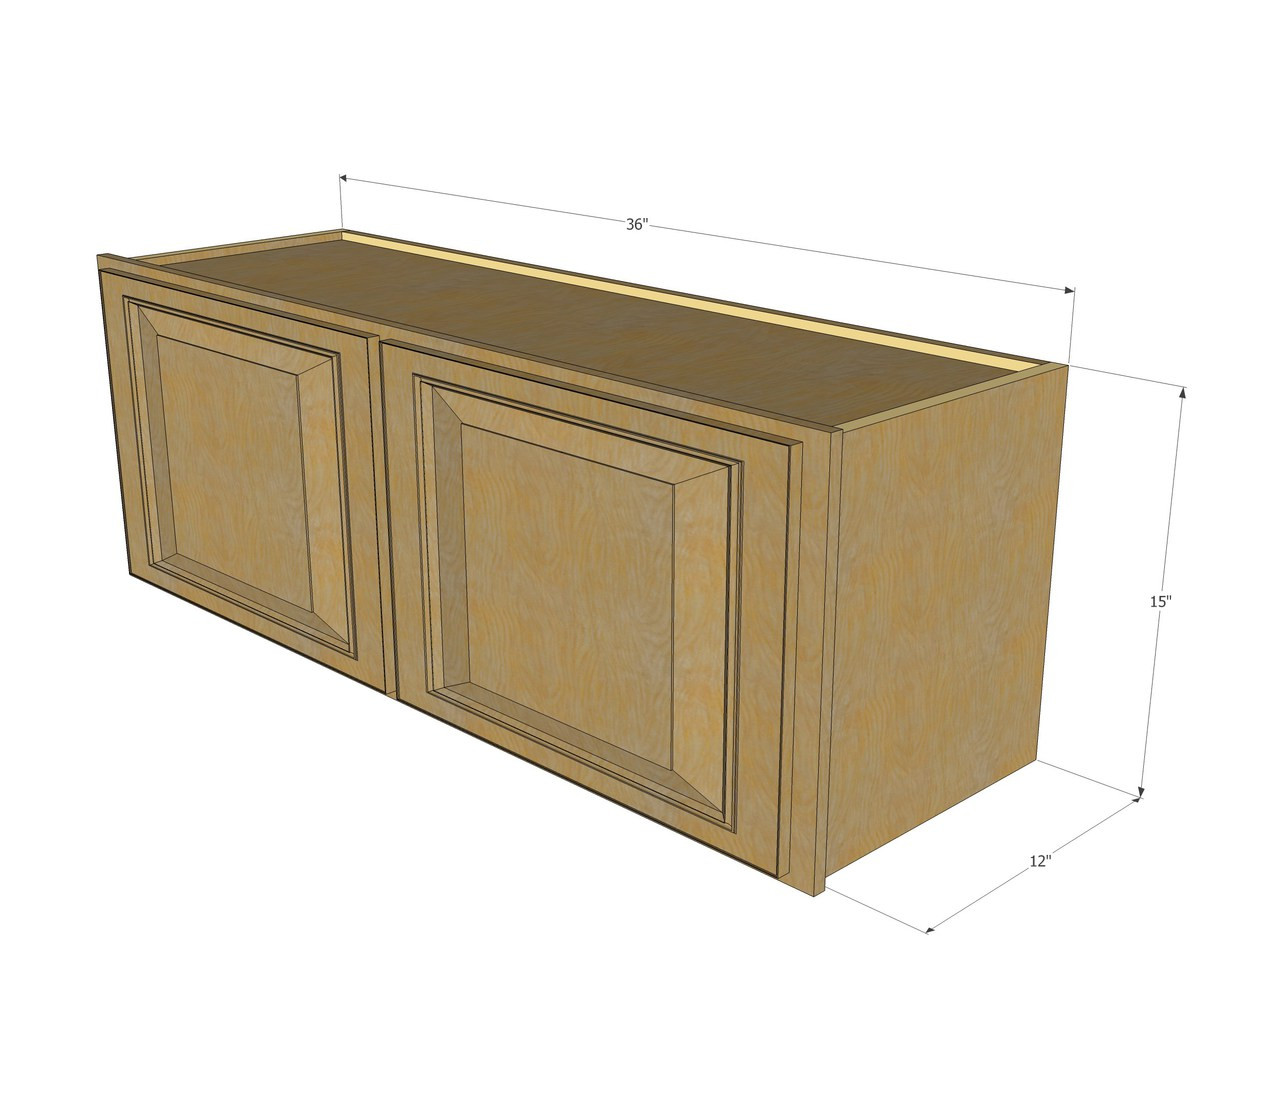 Regal oak horizontal overhead wall cabinet 36 inch wide for Kitchen cabinets 10 x 15